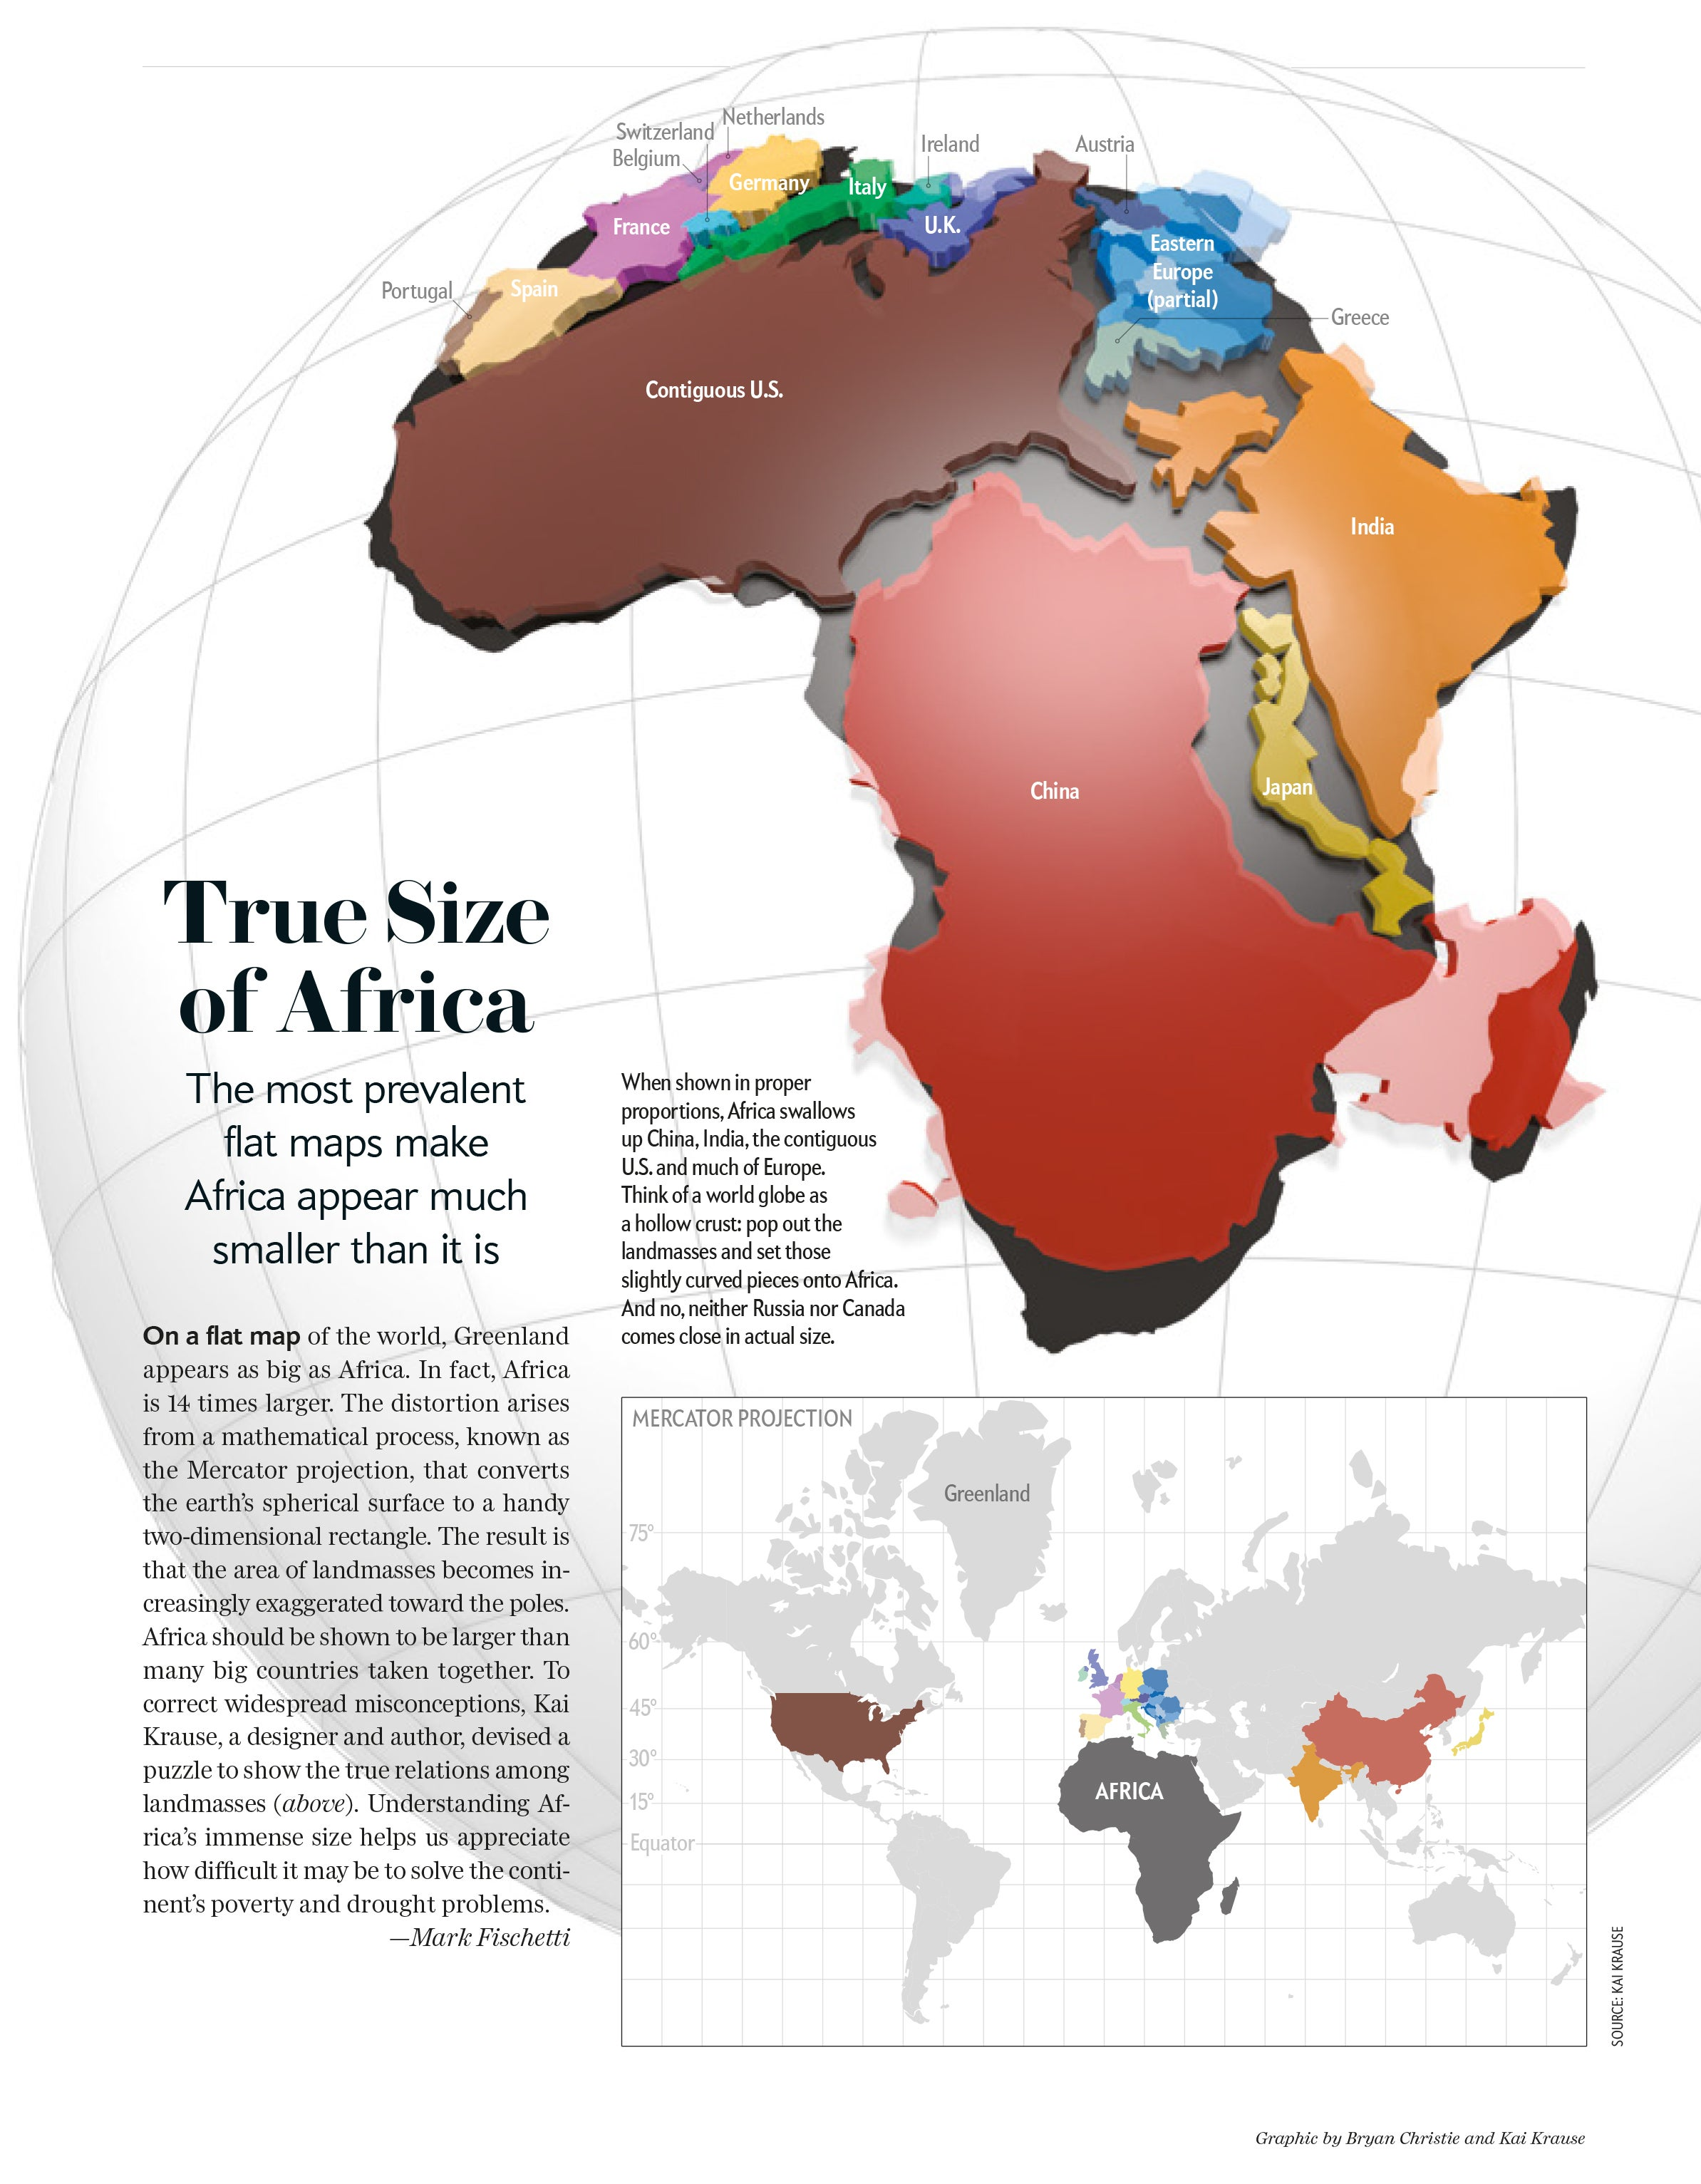 Africa Dwarfs China, Europe and the U.S. - Scientific American